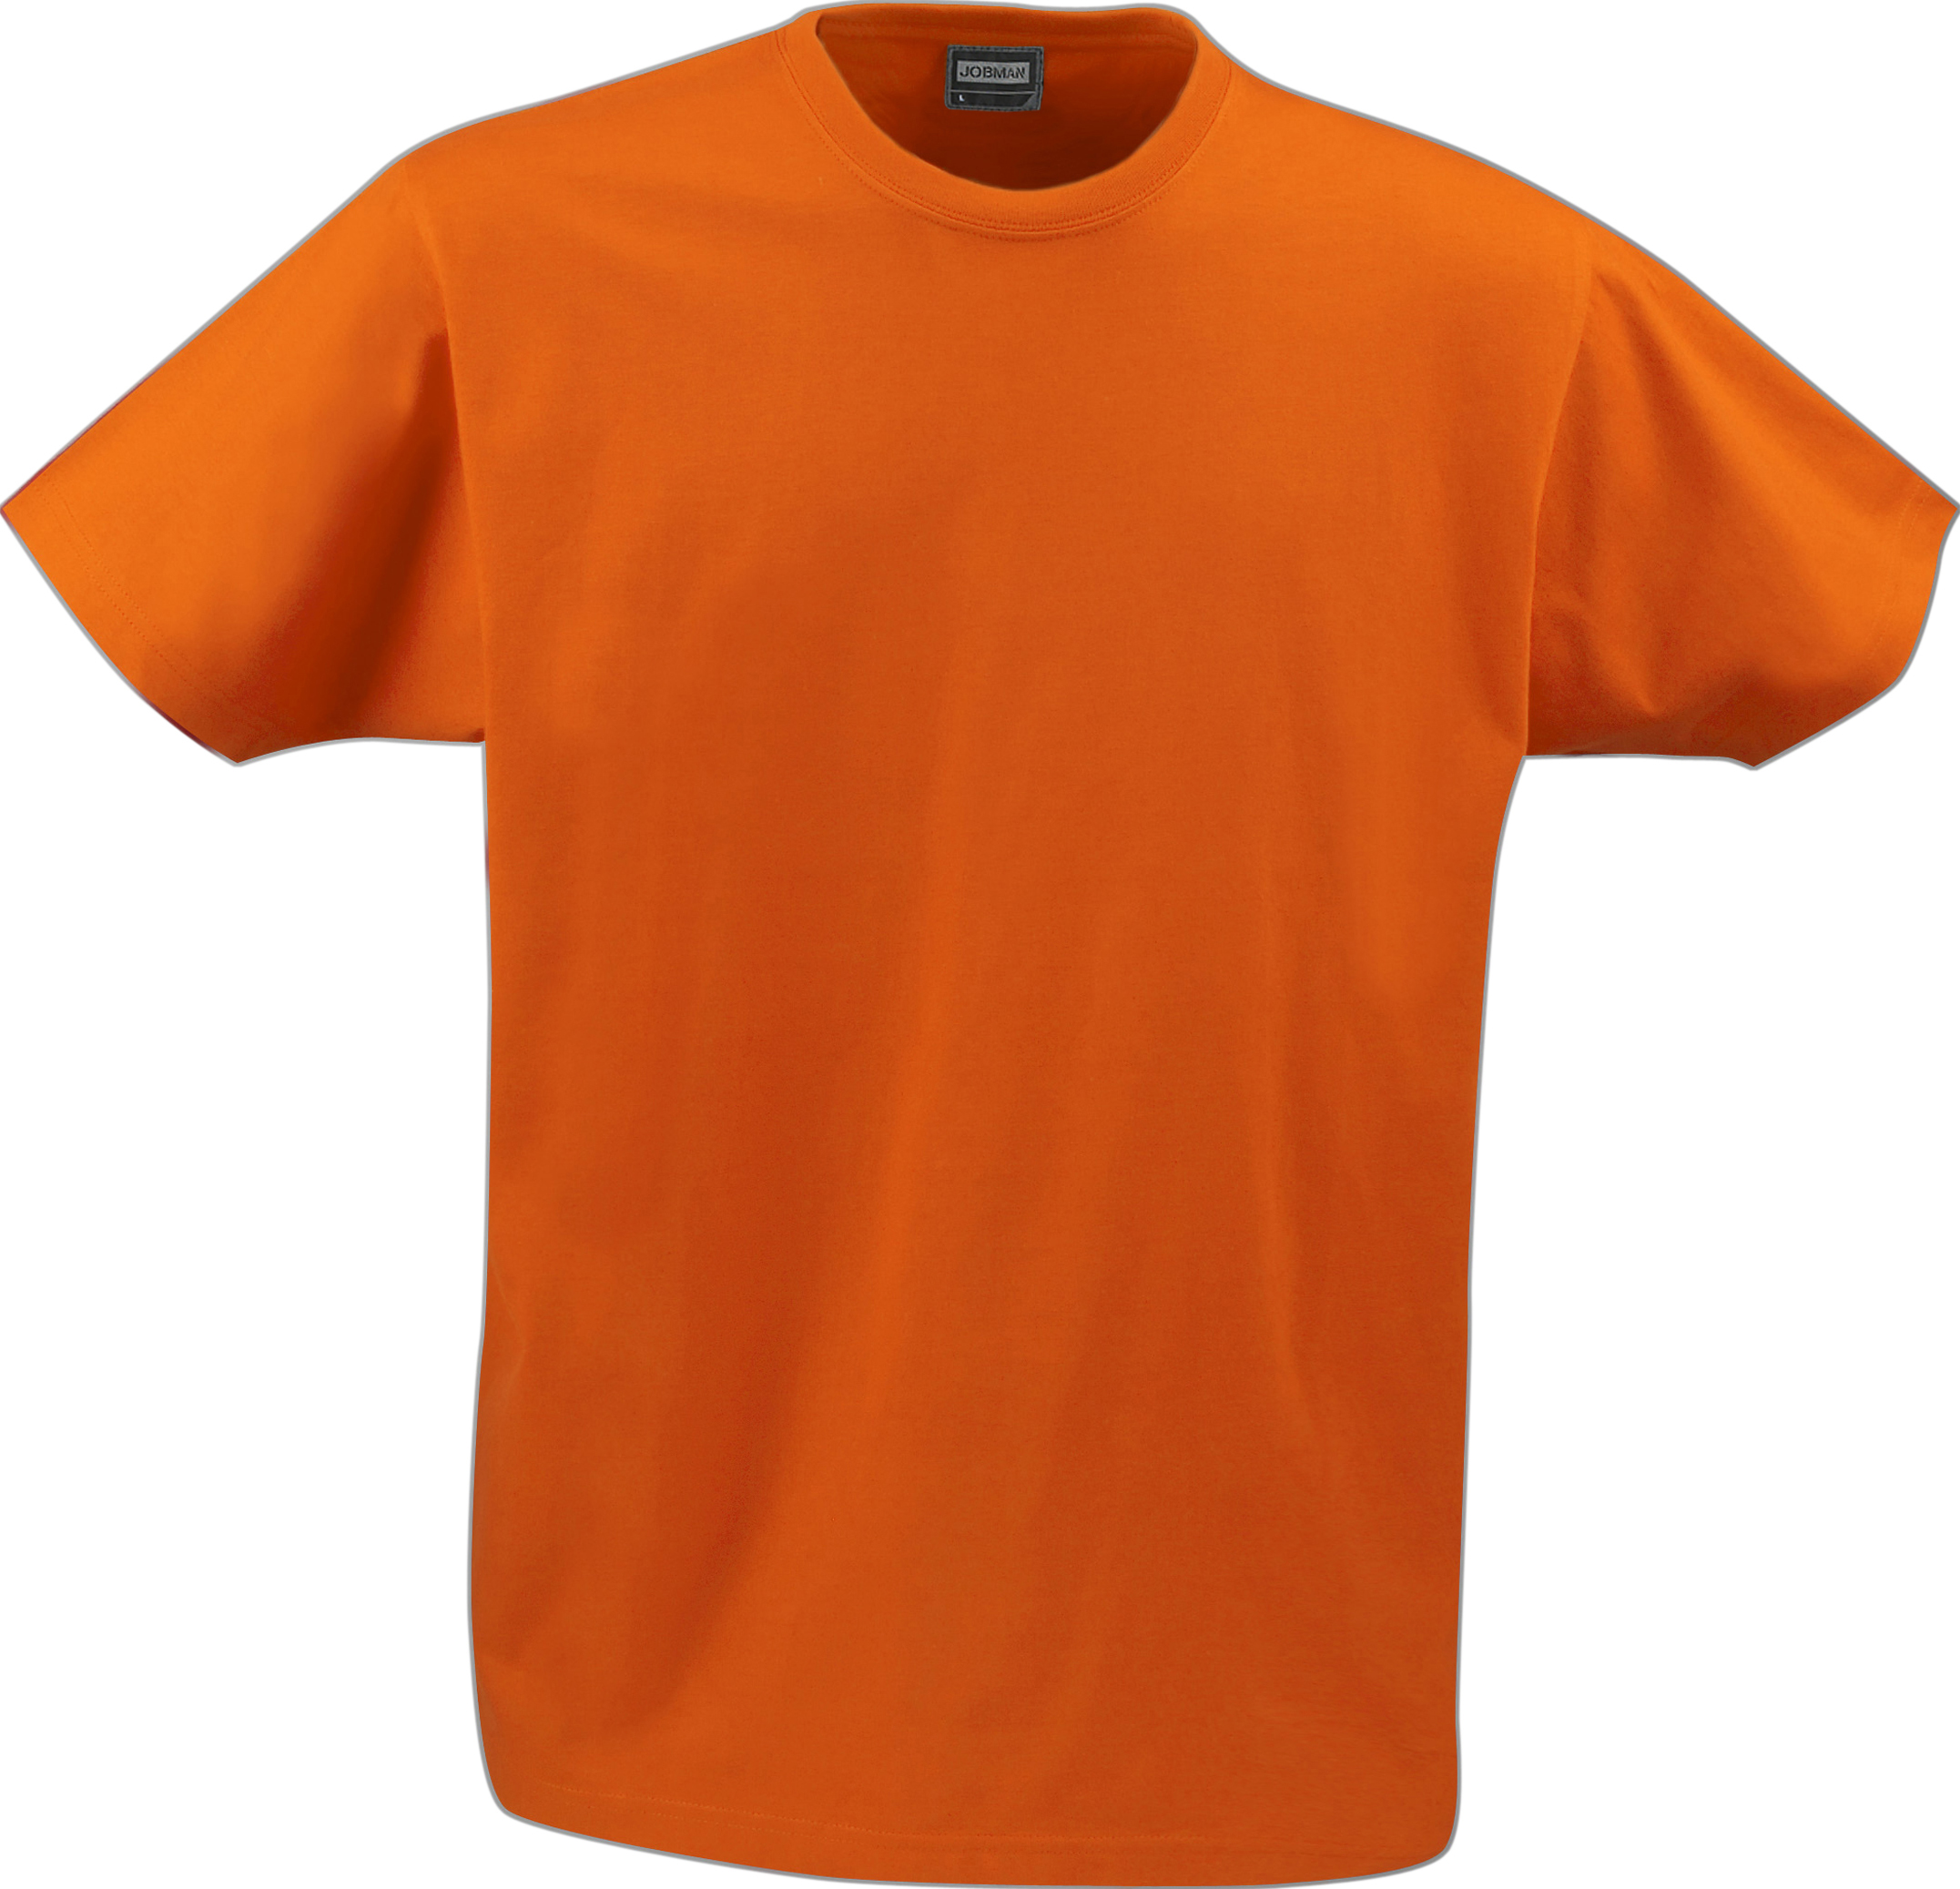 Work t-shirt jobman